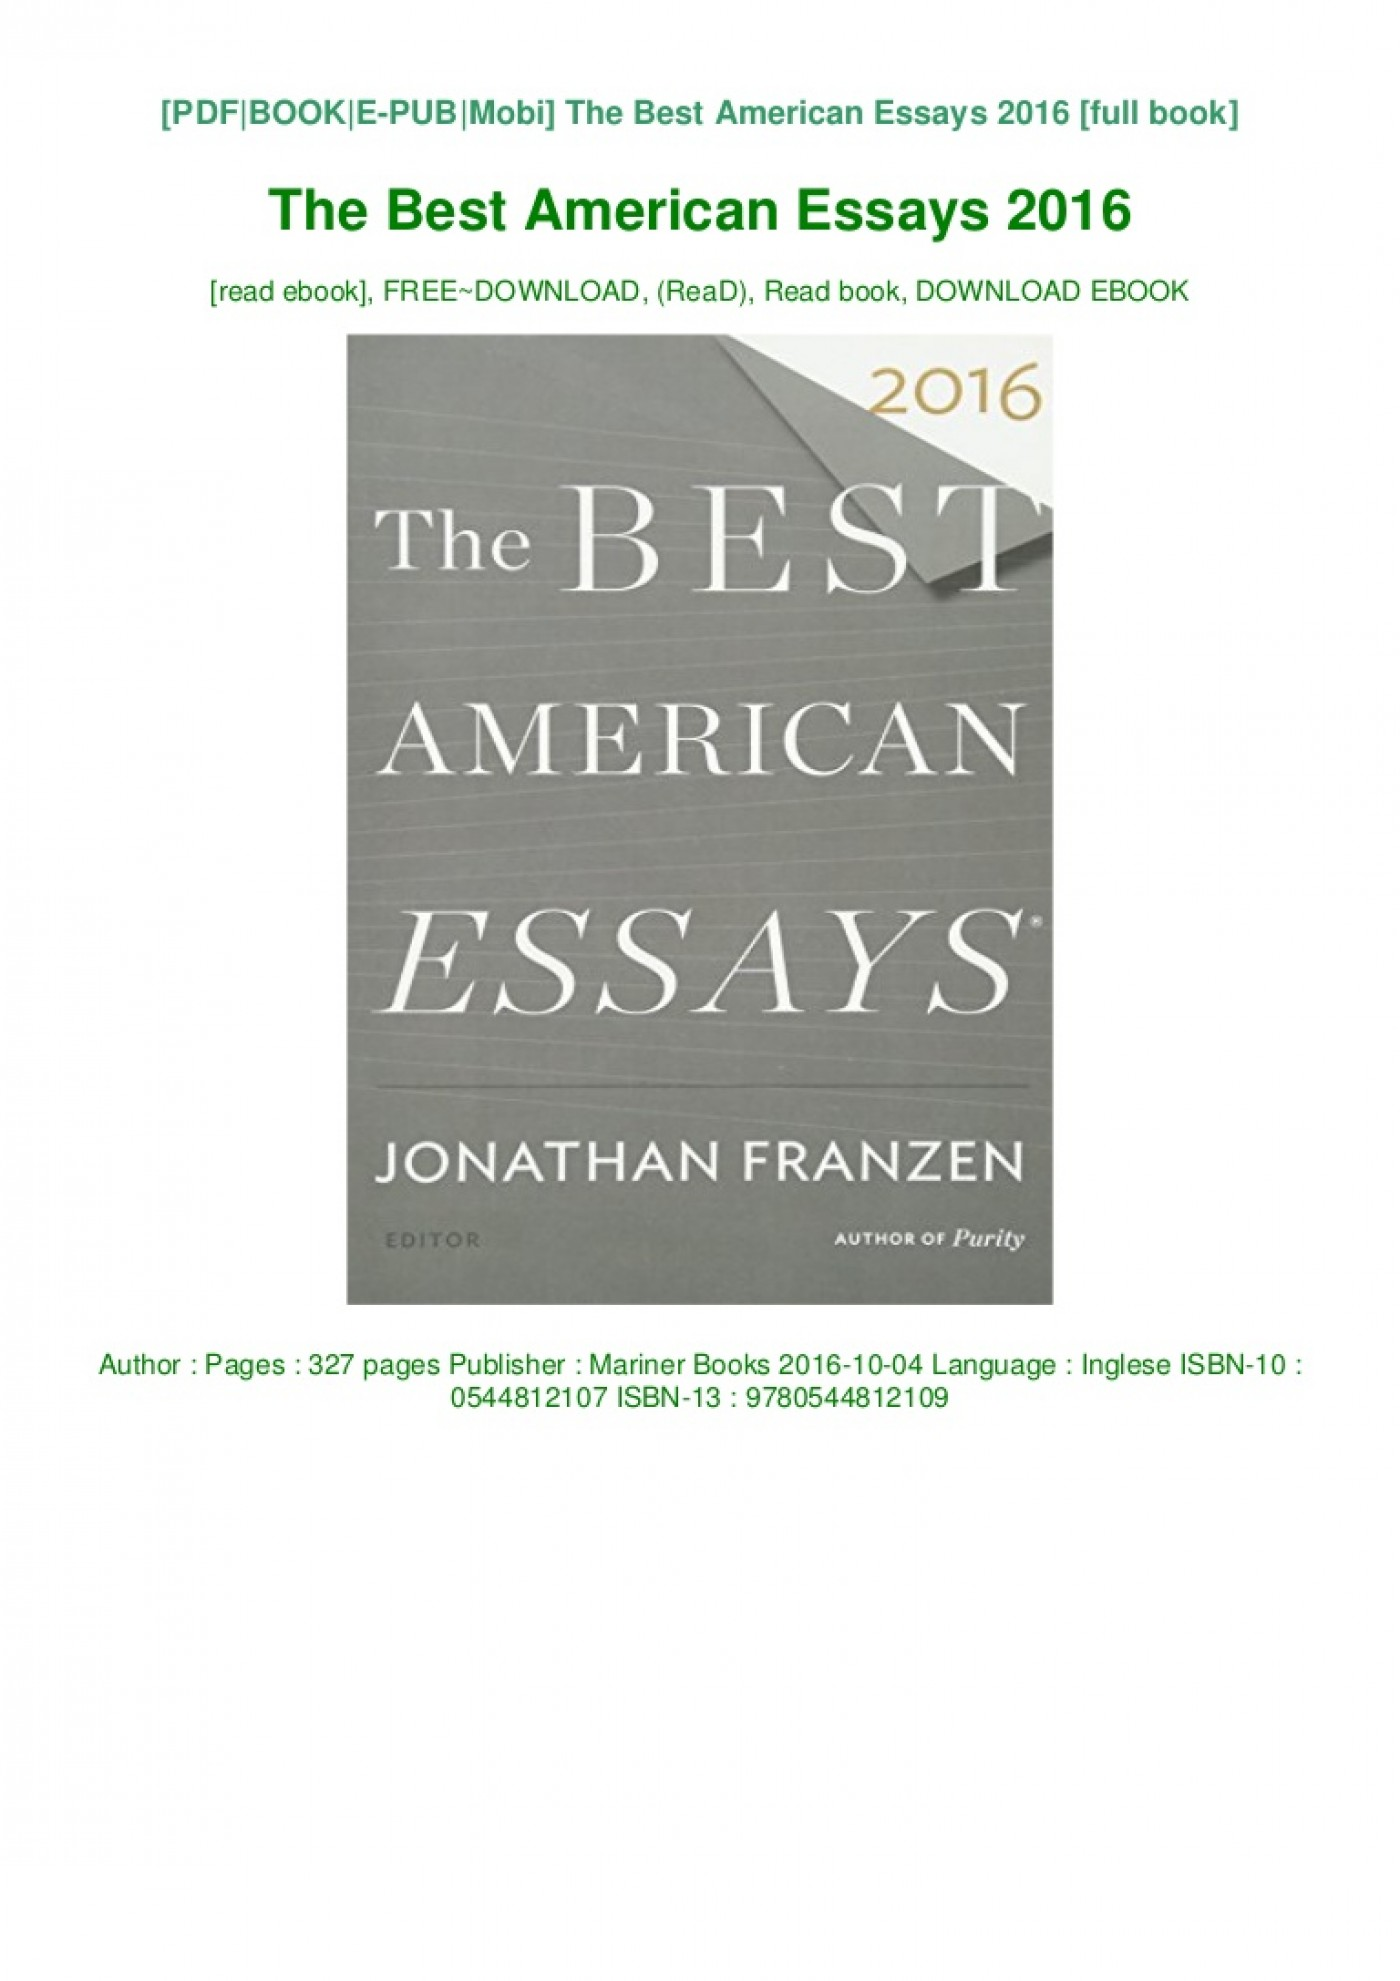 014 The Best American Essays Essay Example Download Pdf Epub Audiobook Ebook Thumbnail Wonderful 2013 Of Century Sparknotes 2017 1400